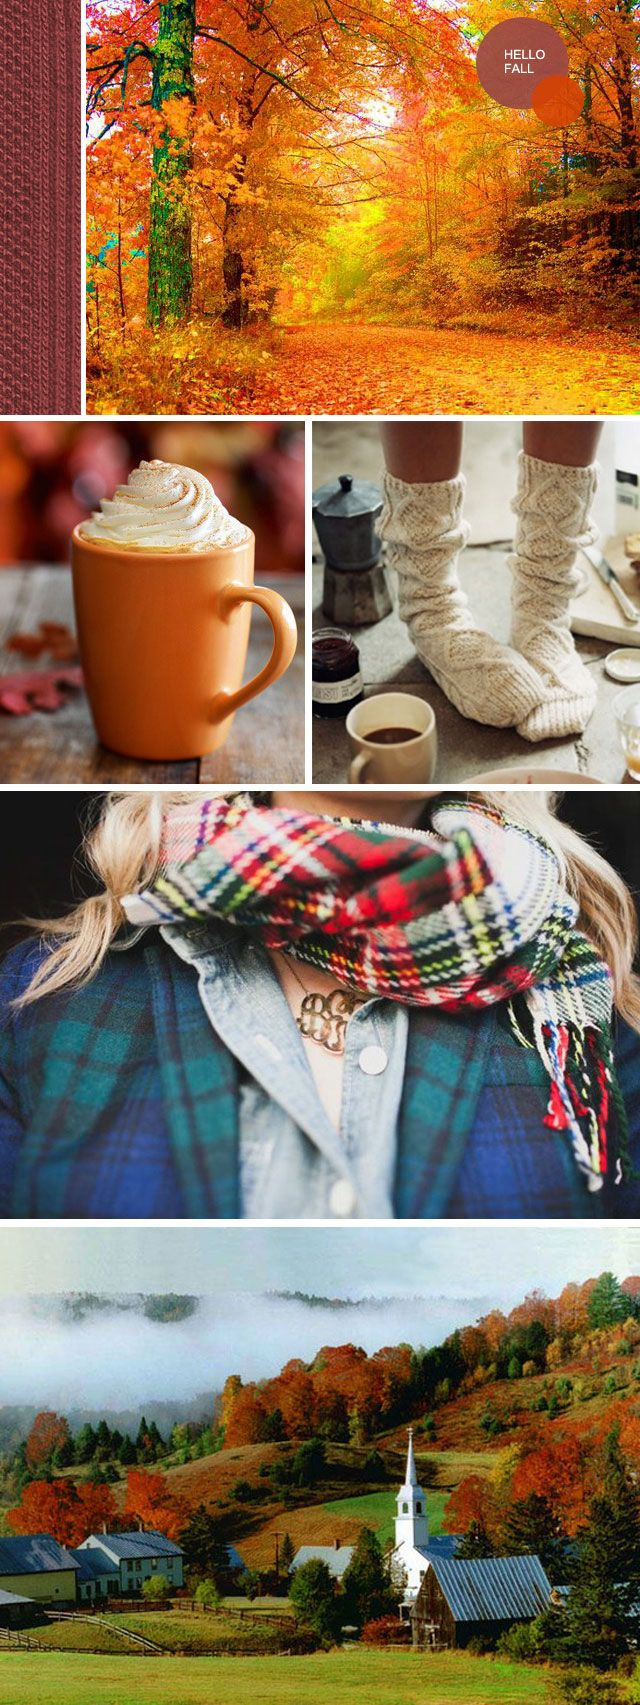 fall time. ready for apple cider, cranberry sierra mist, pumpkin delights &…